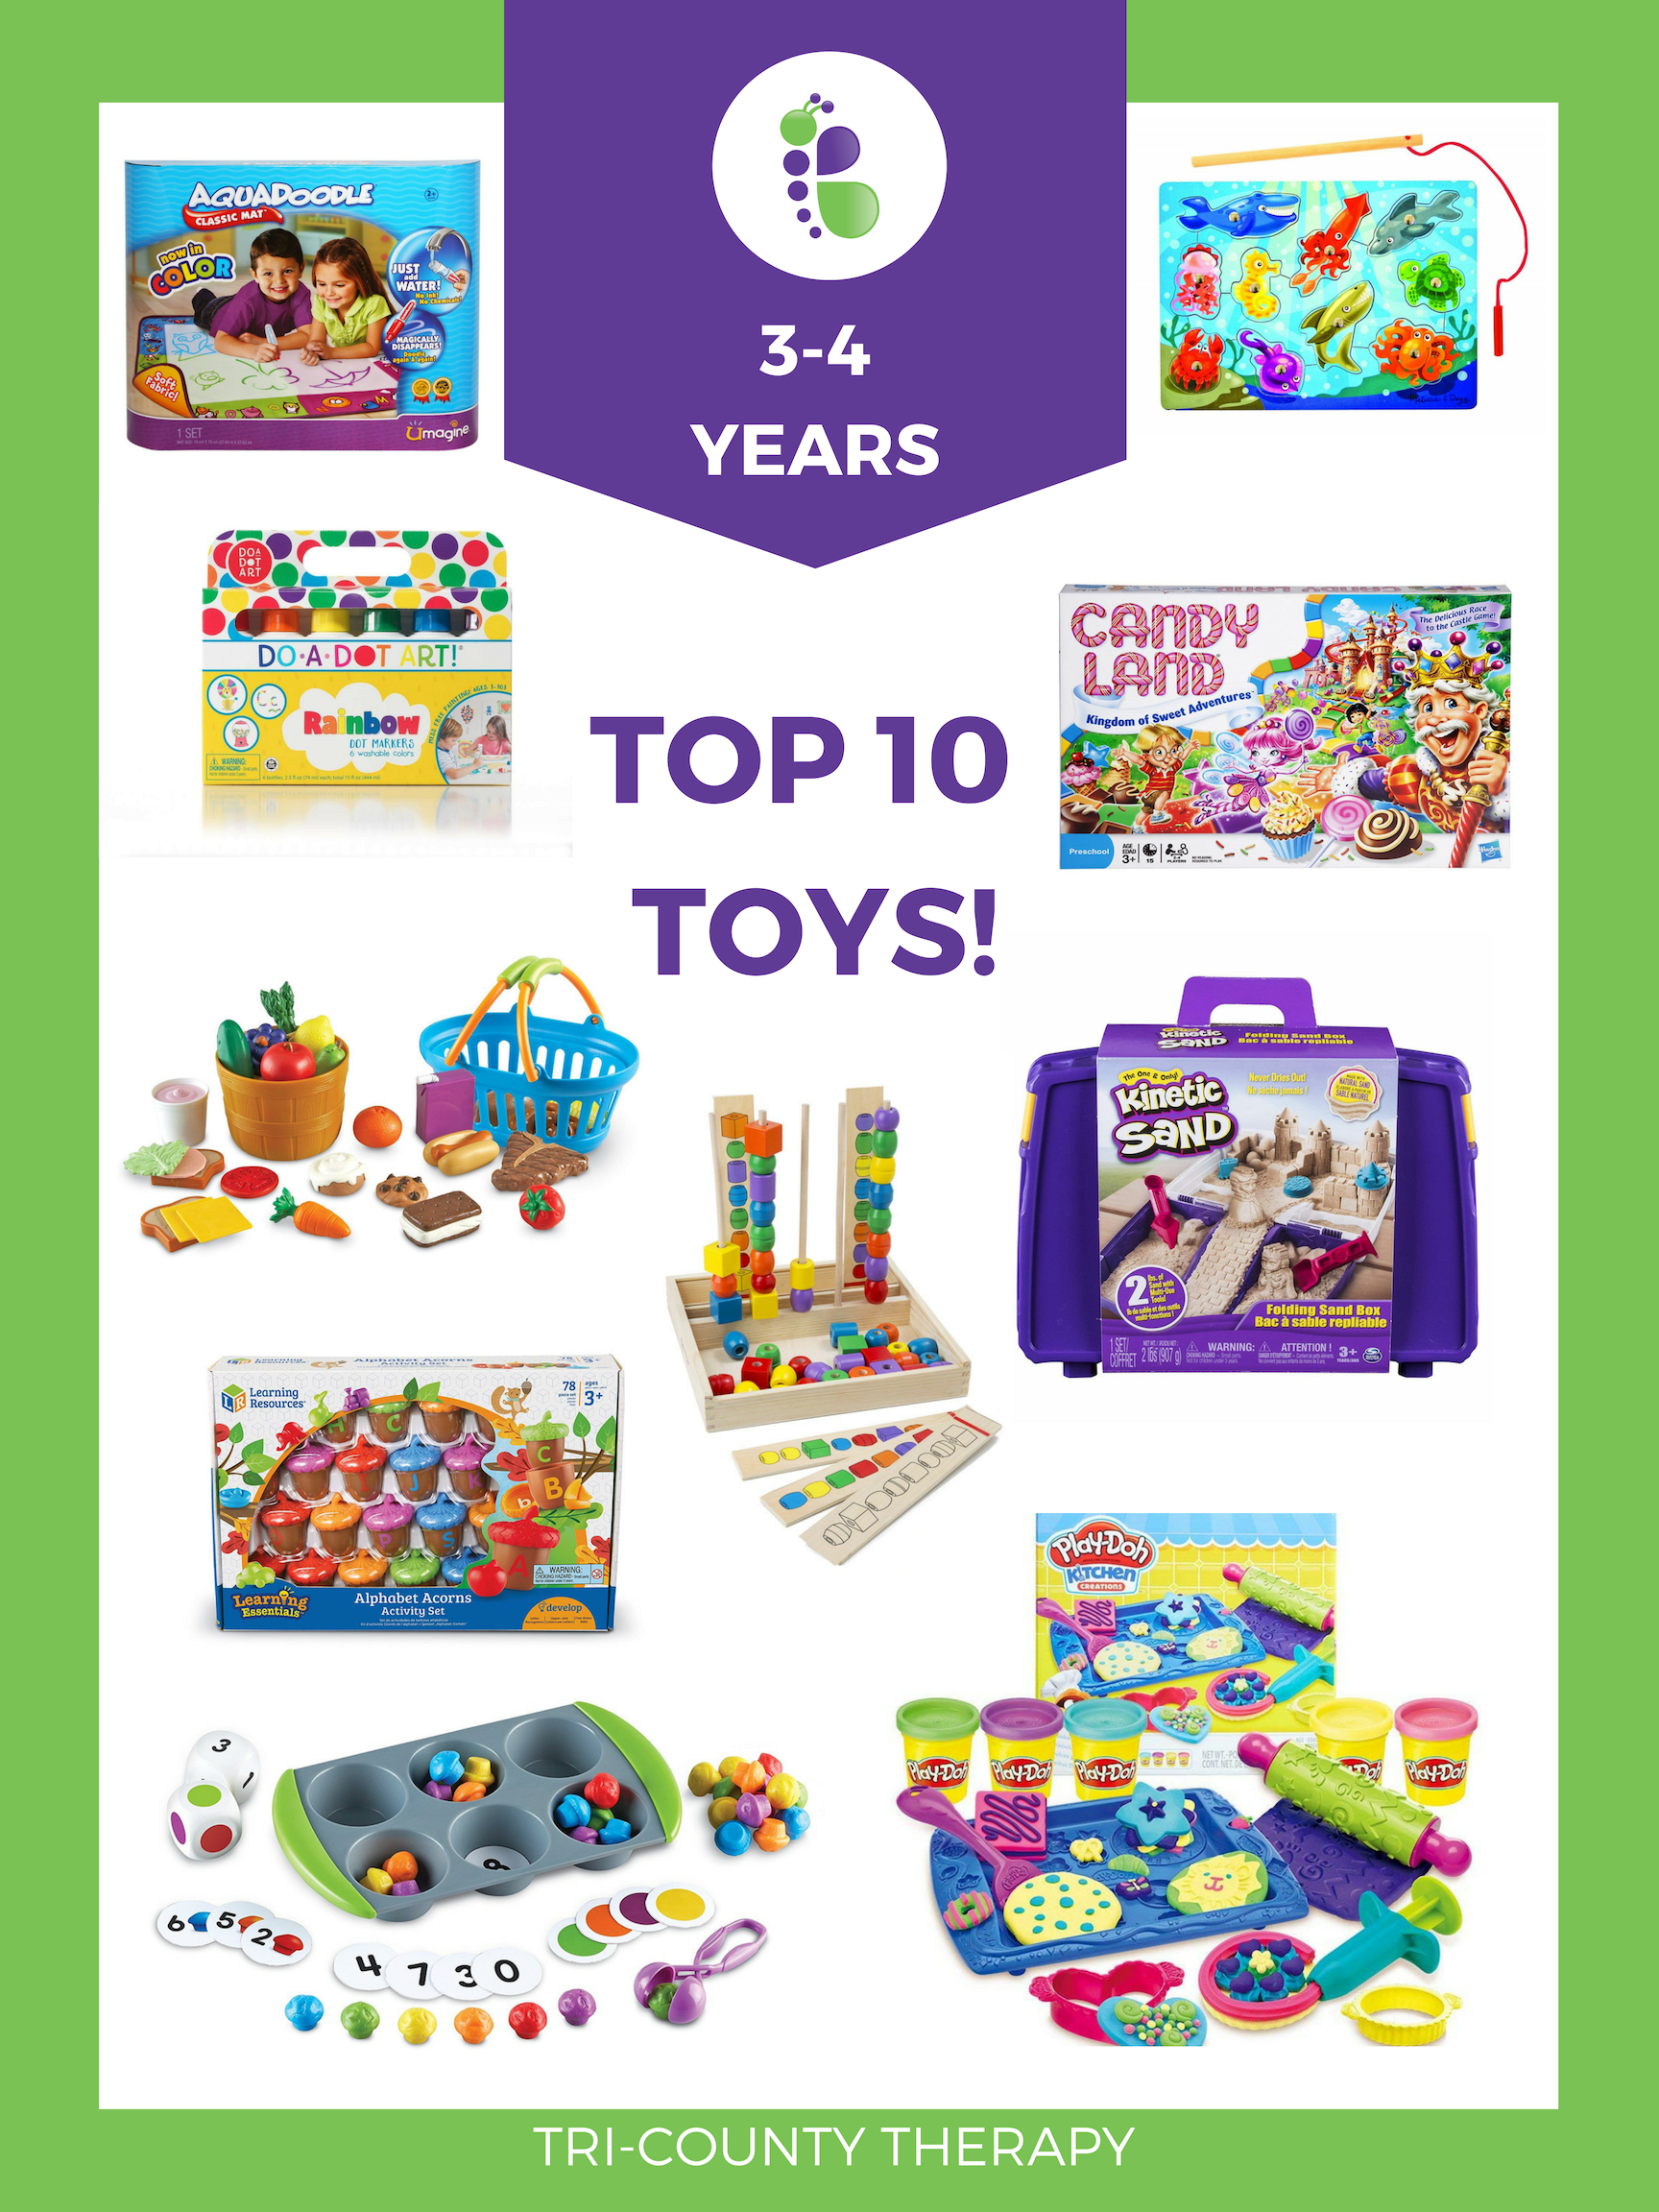 Tri County Therapy, three year old, four year old, Favorite Toys, Top Toy Picks, Child's Toy, Therapy Toy, Greenville, Charleston, Ladson, Anderson, Pediatric Therapy, Child's Therapy